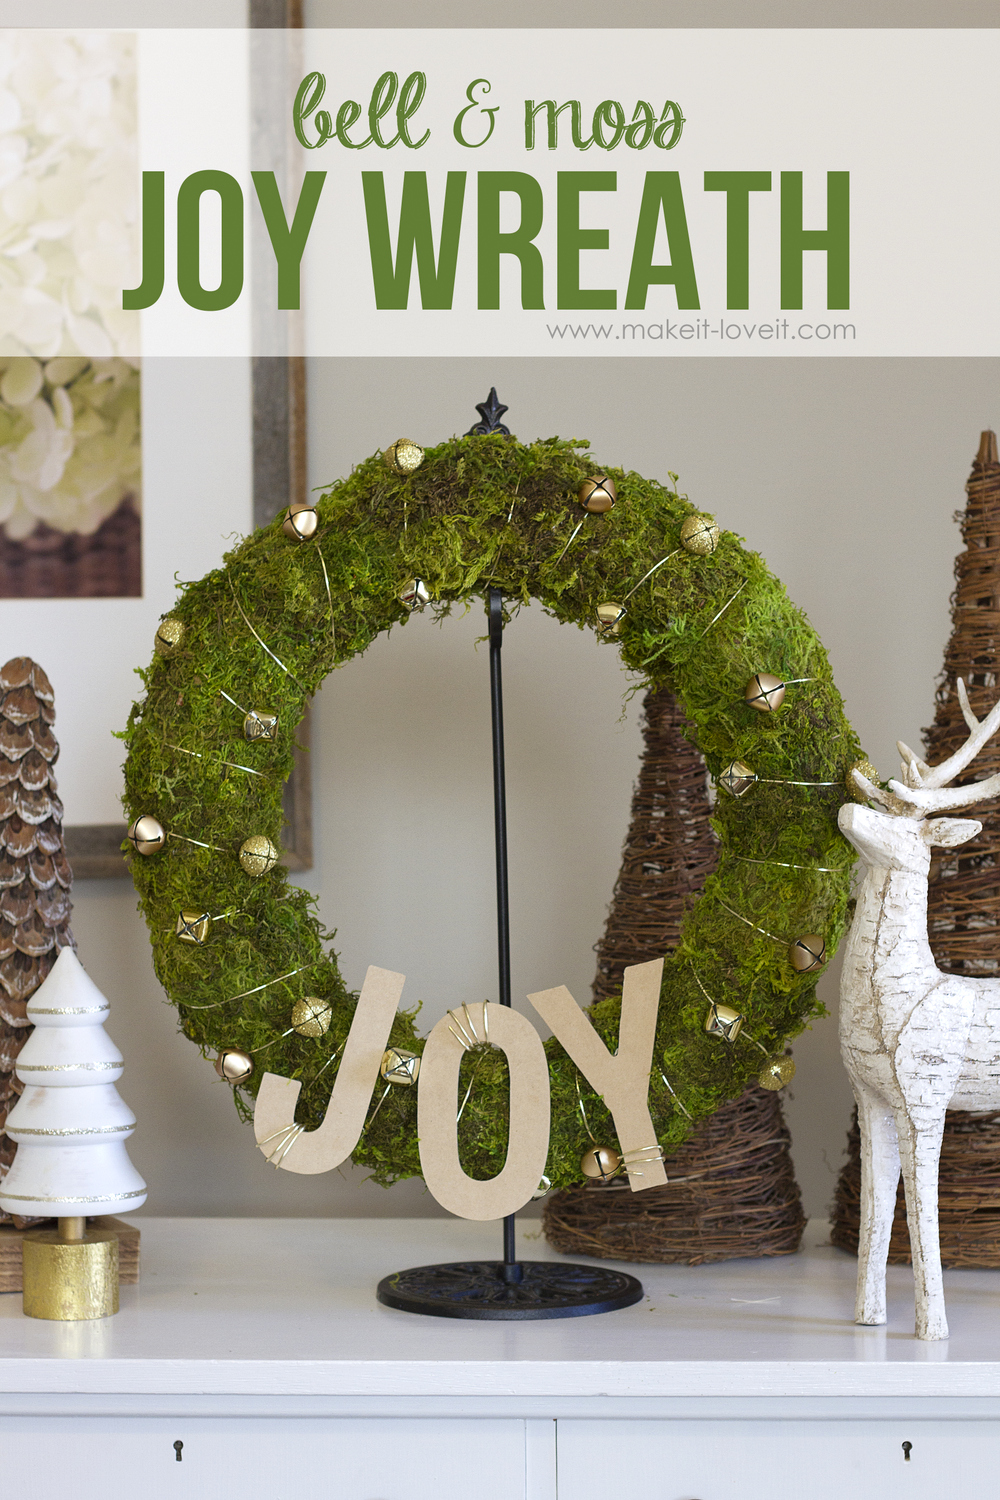 Make a simple bell & moss joy wreath